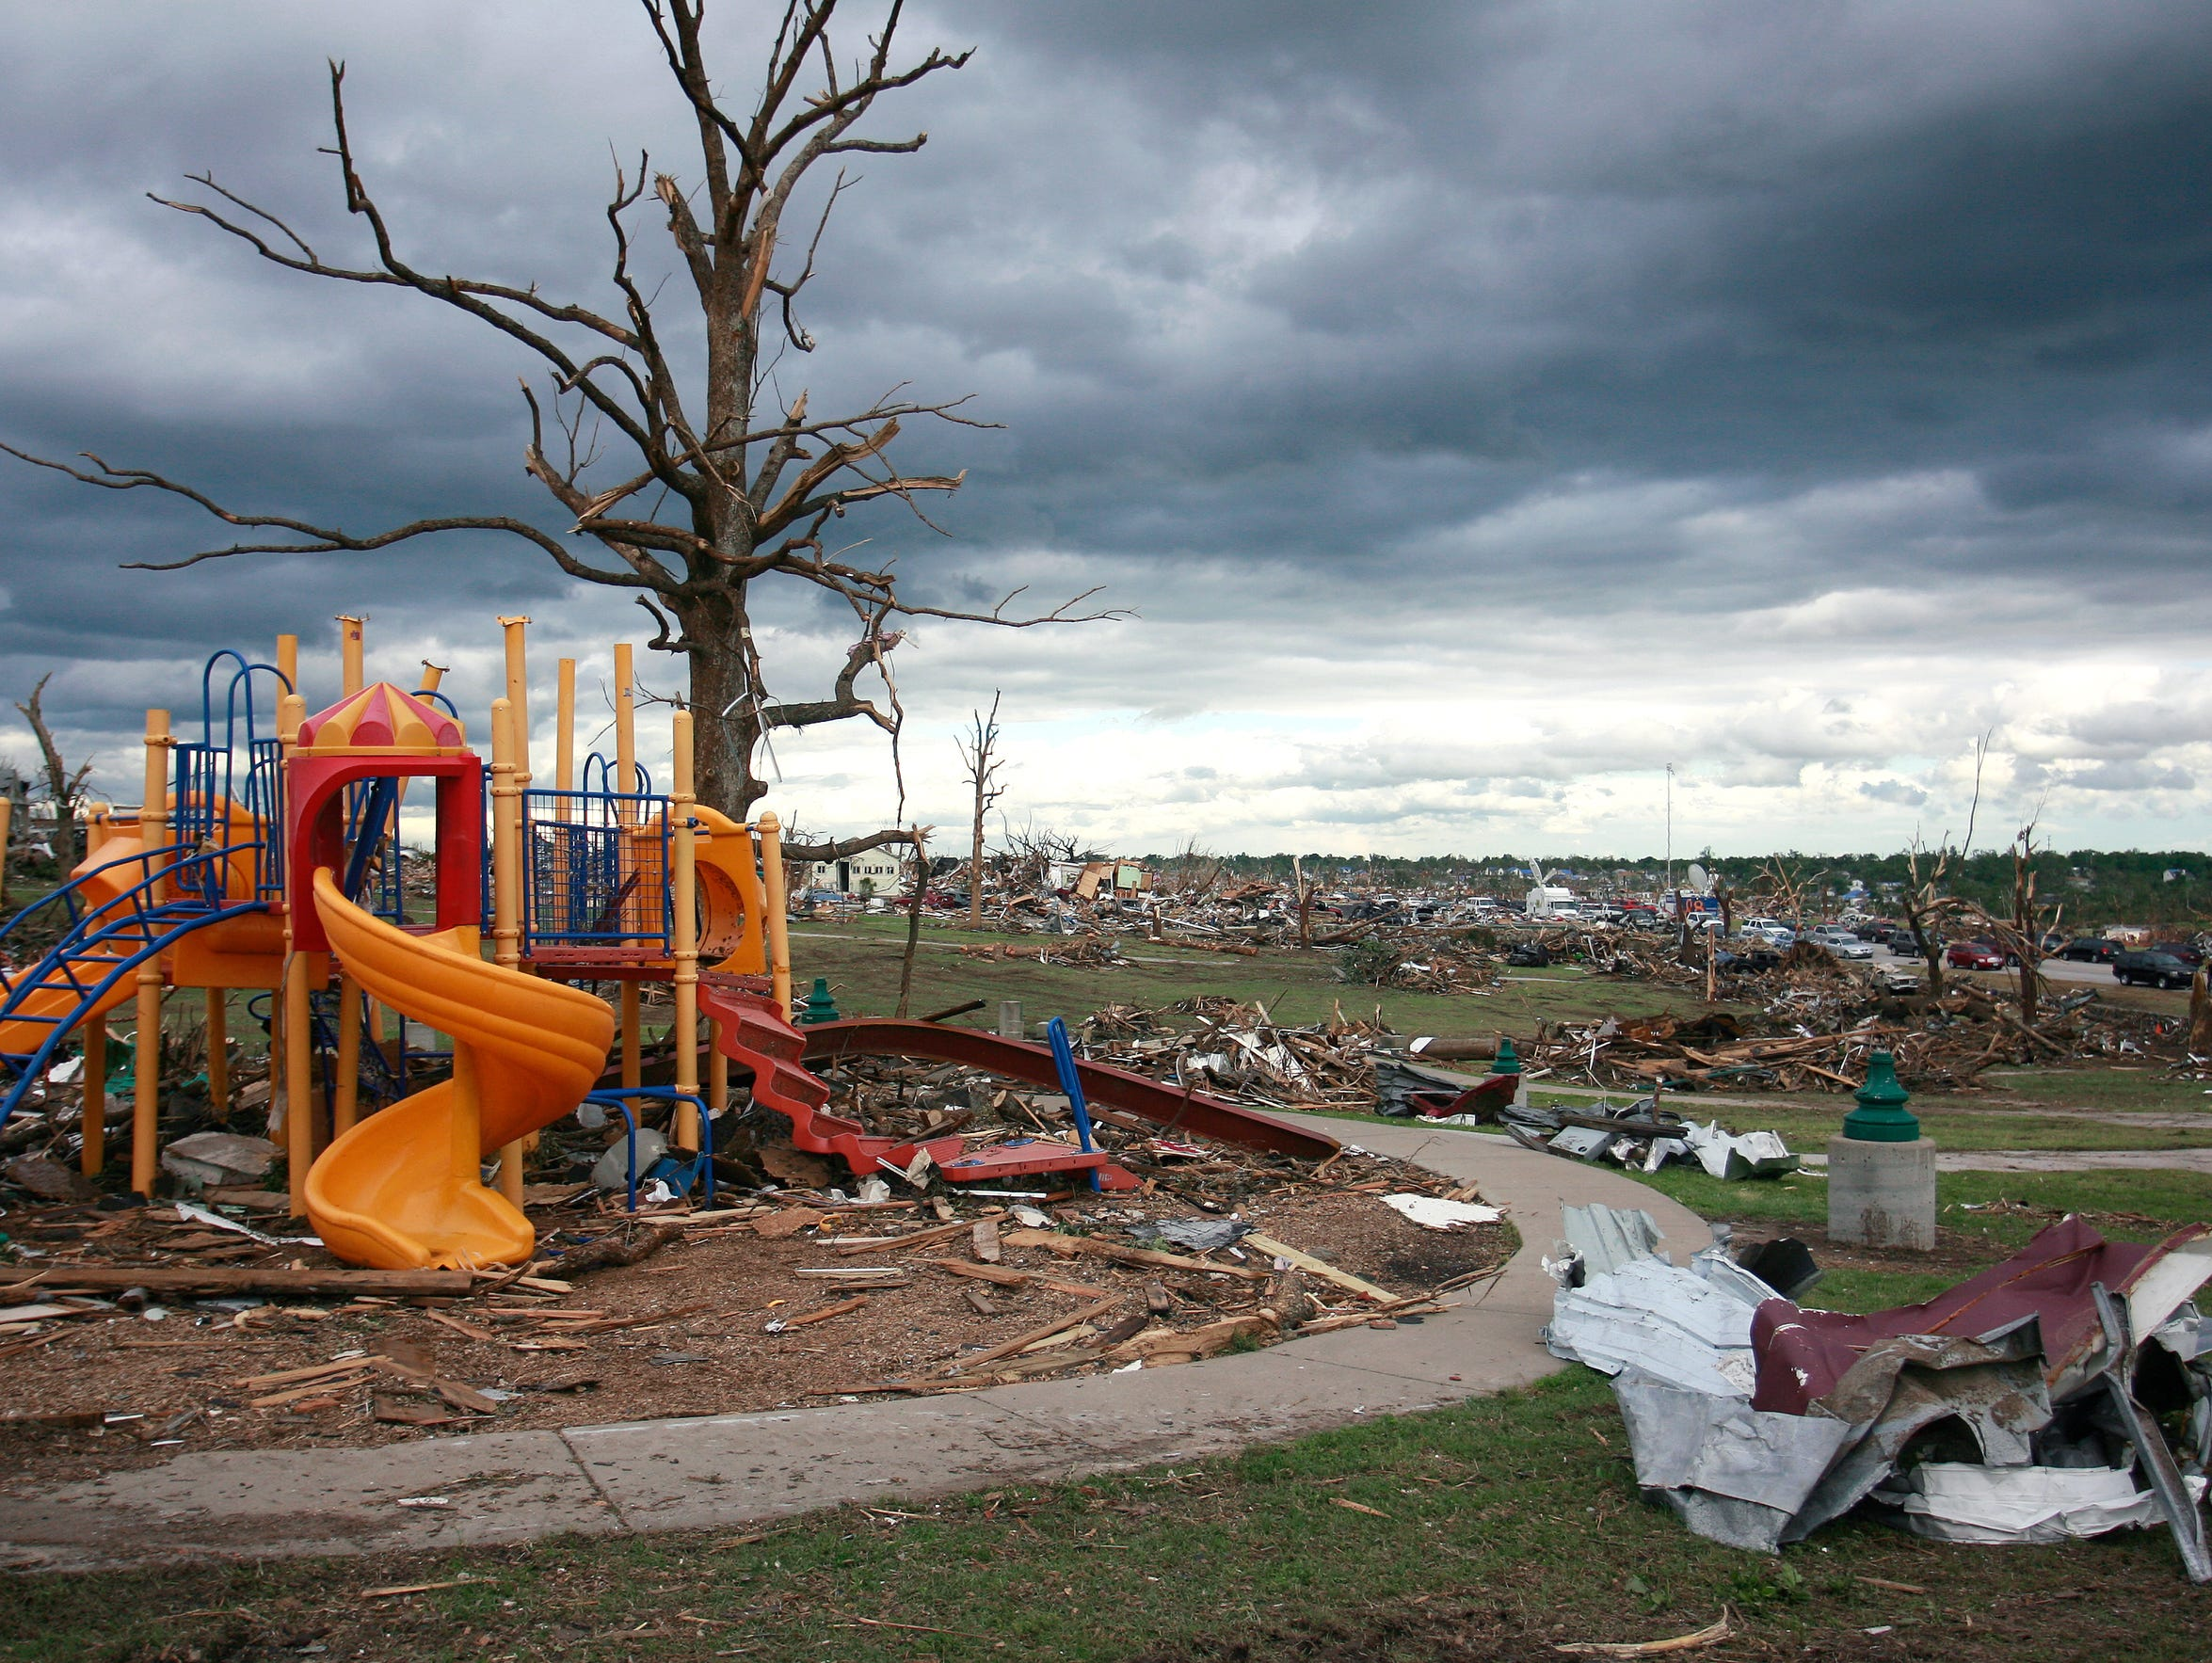 A park lies in ruins after a EF-5 tornado hit it on